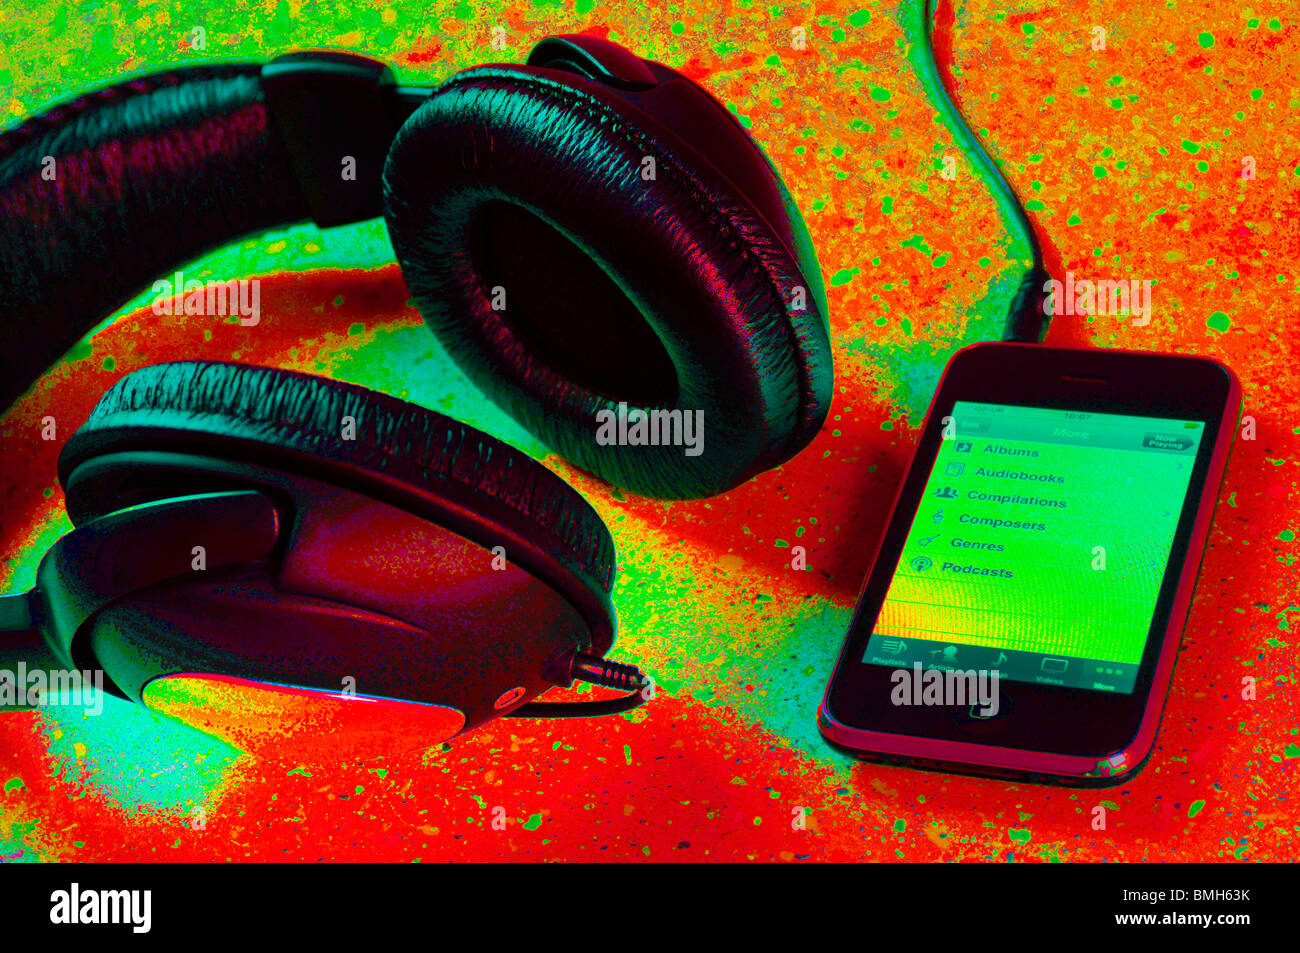 iphone plugged into a pair of headphones - Stock Image